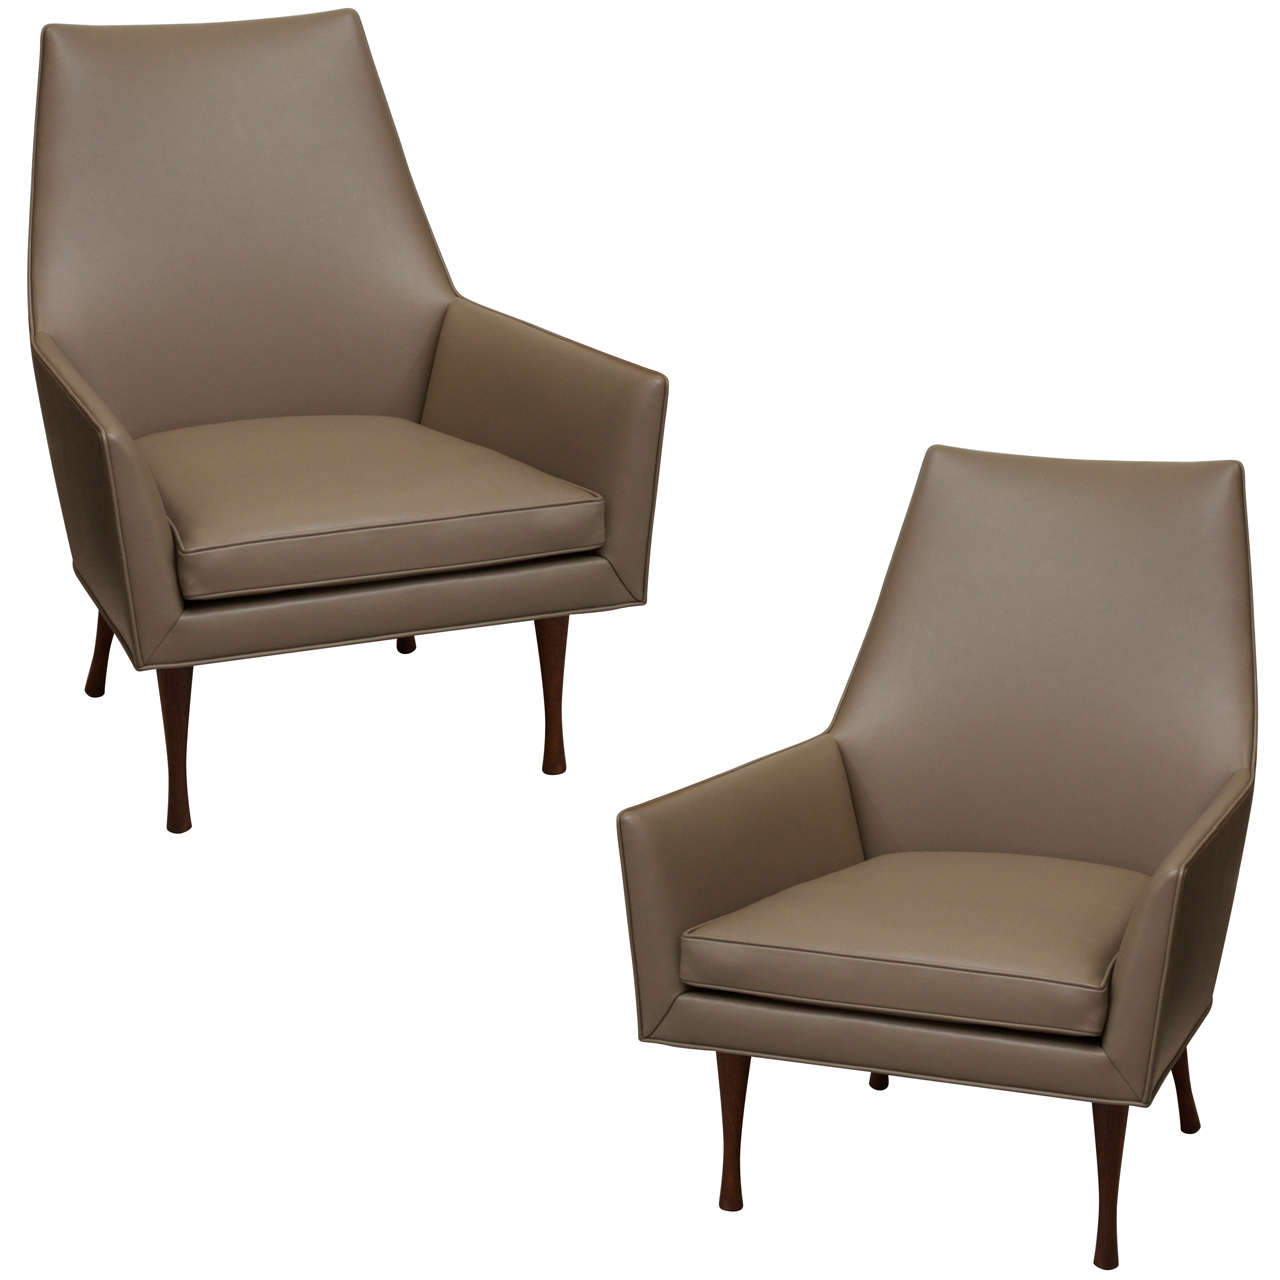 Home gt furniture gt seating gt club chairs